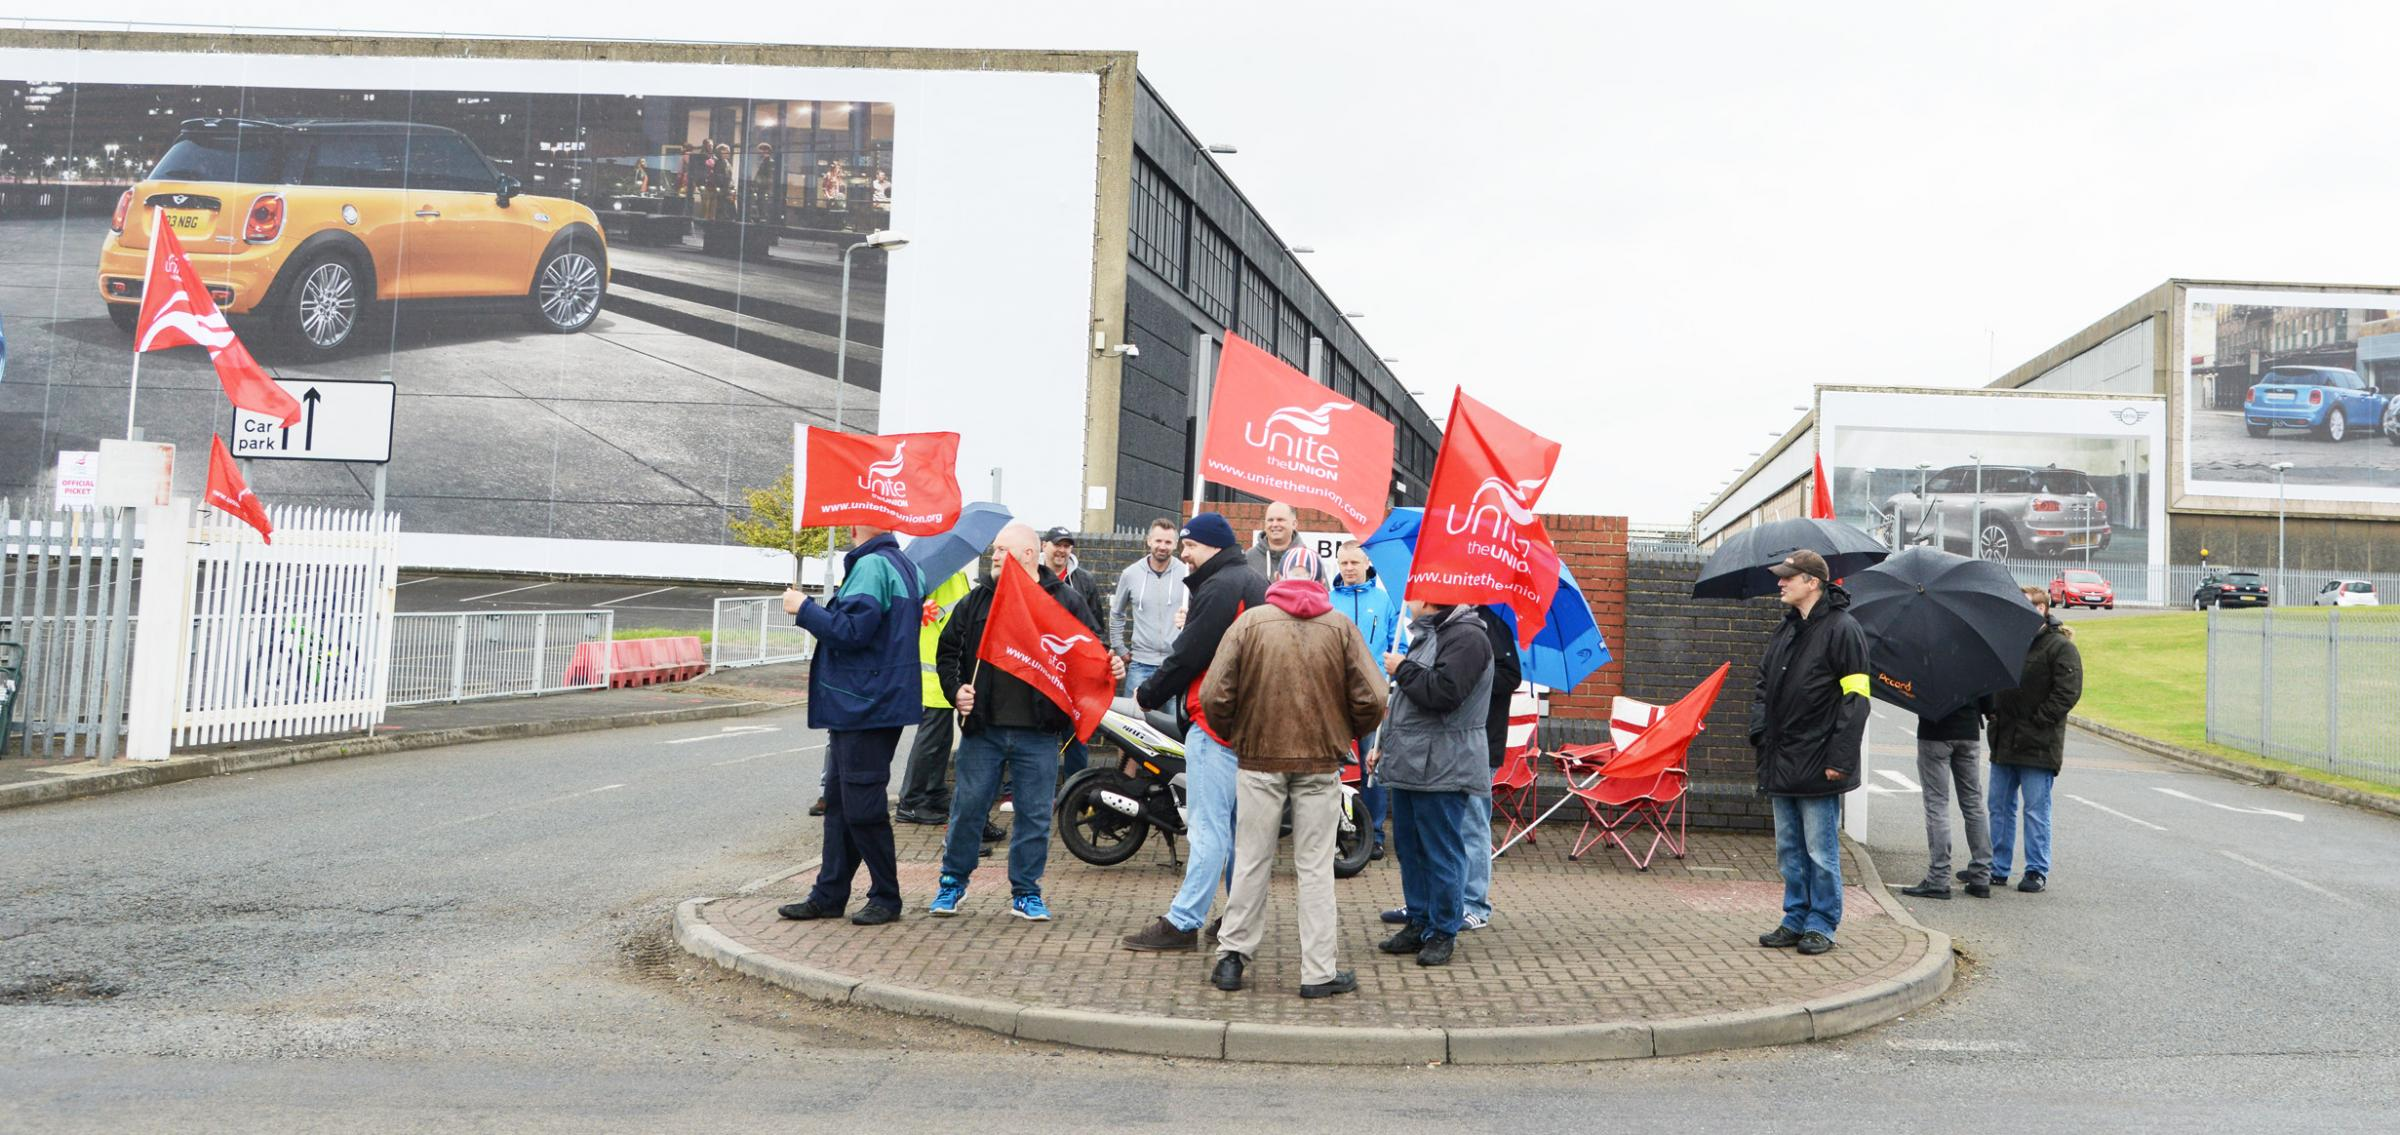 BMW workers striking outside the Swindon plant earlier this year. Picture by Dave Cox